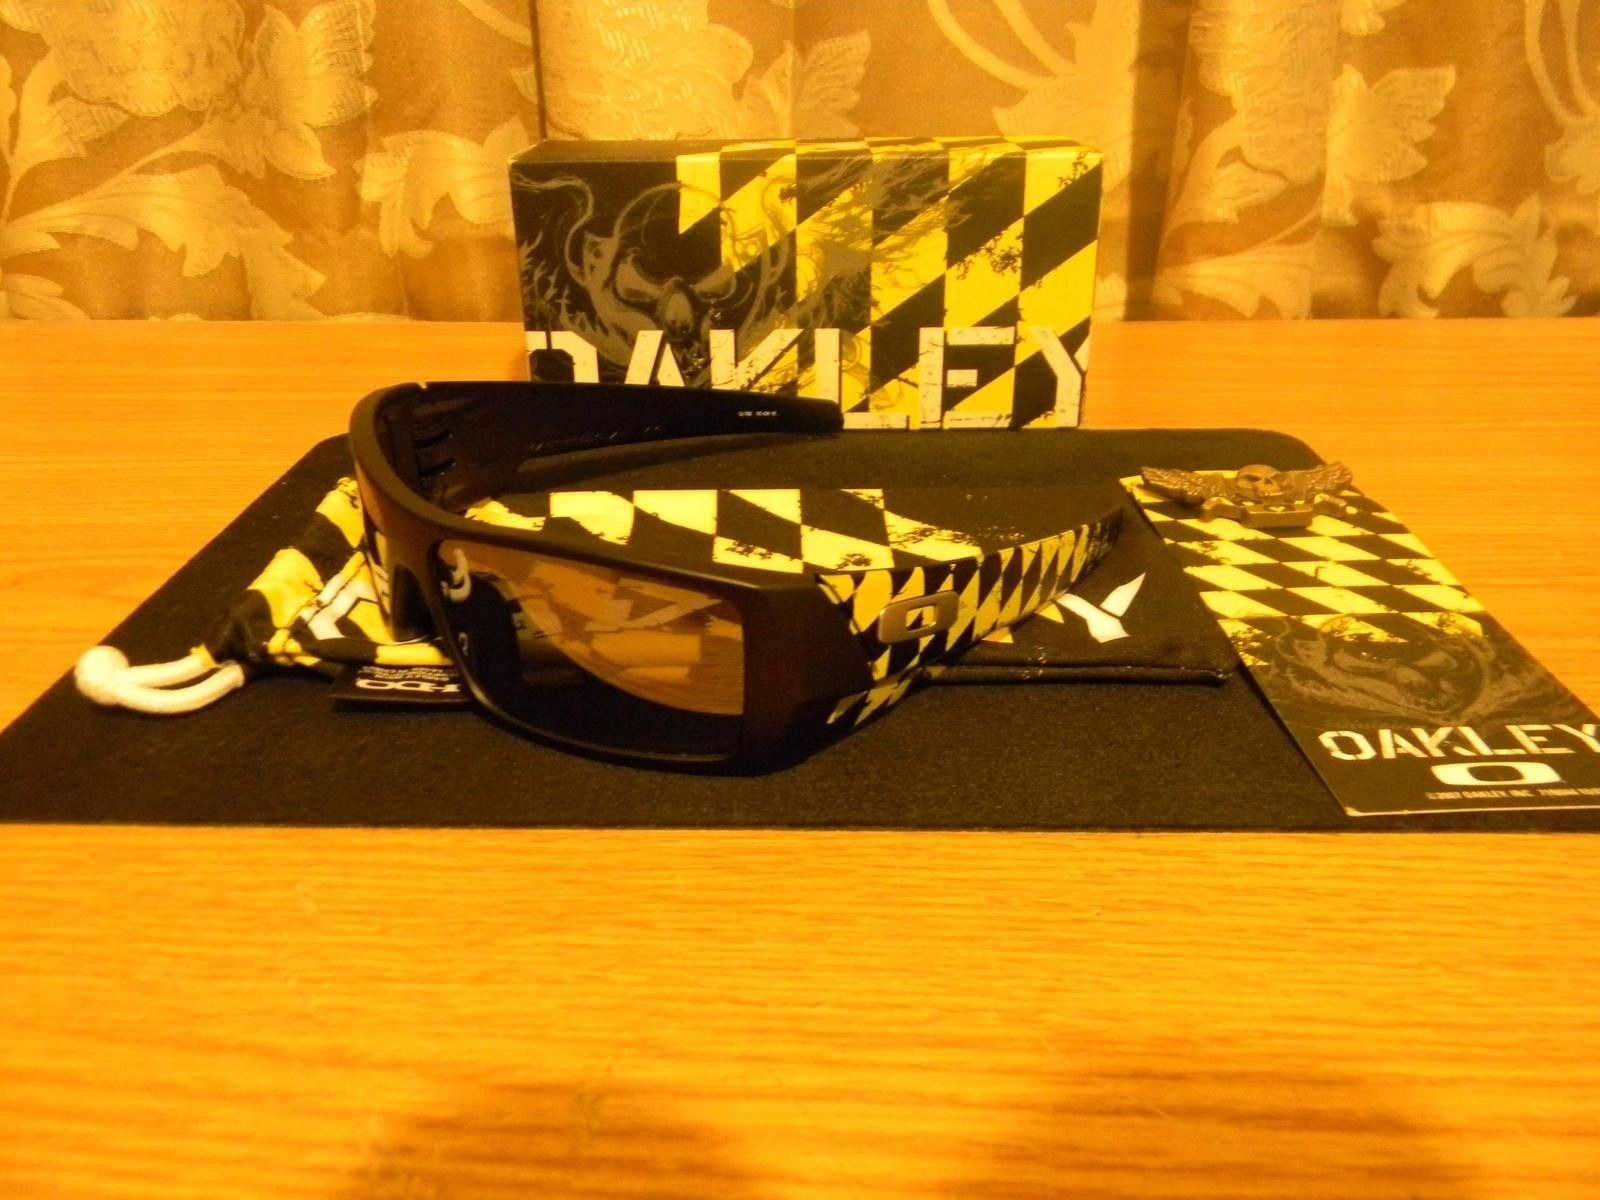 Oakley Gascan Flying Tiger Black Version  And JPM With Art On The Side - CWyMT.jpg